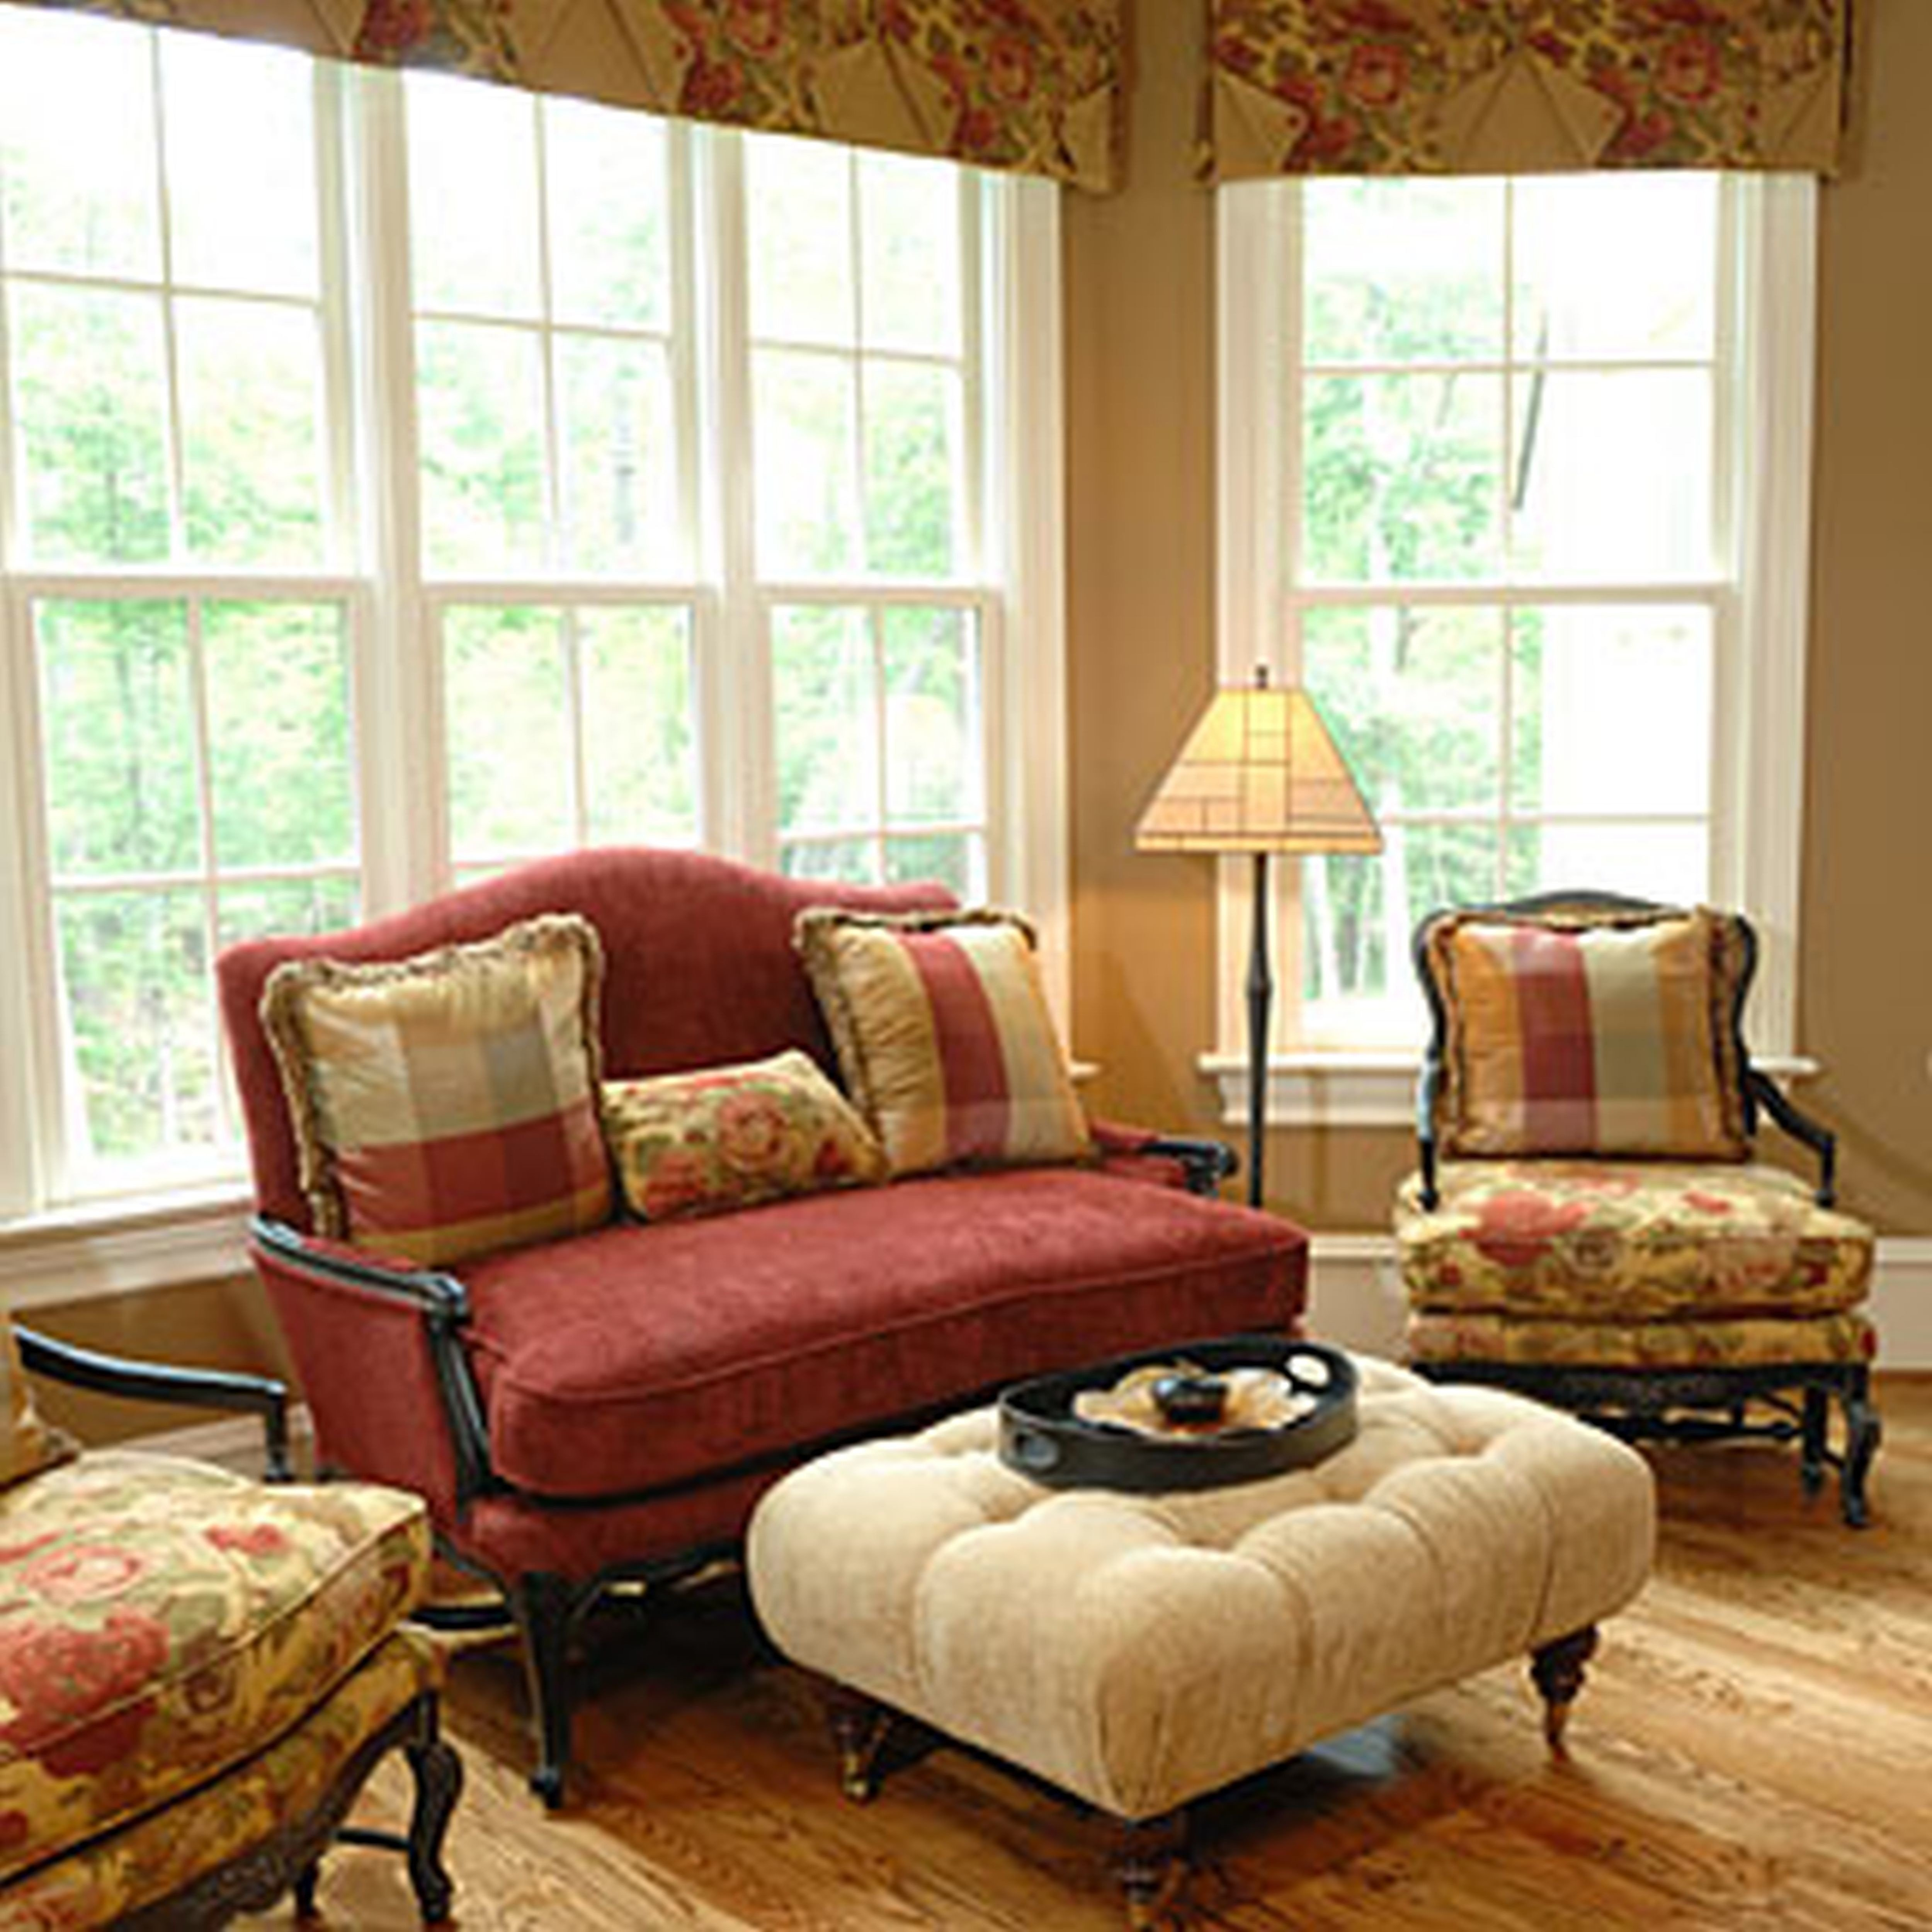 Country Living Room Decorating Ideas Best Of Ideas Creating A Stunning Room In Your Home with French Country Decorating — Craftbeerstorelb